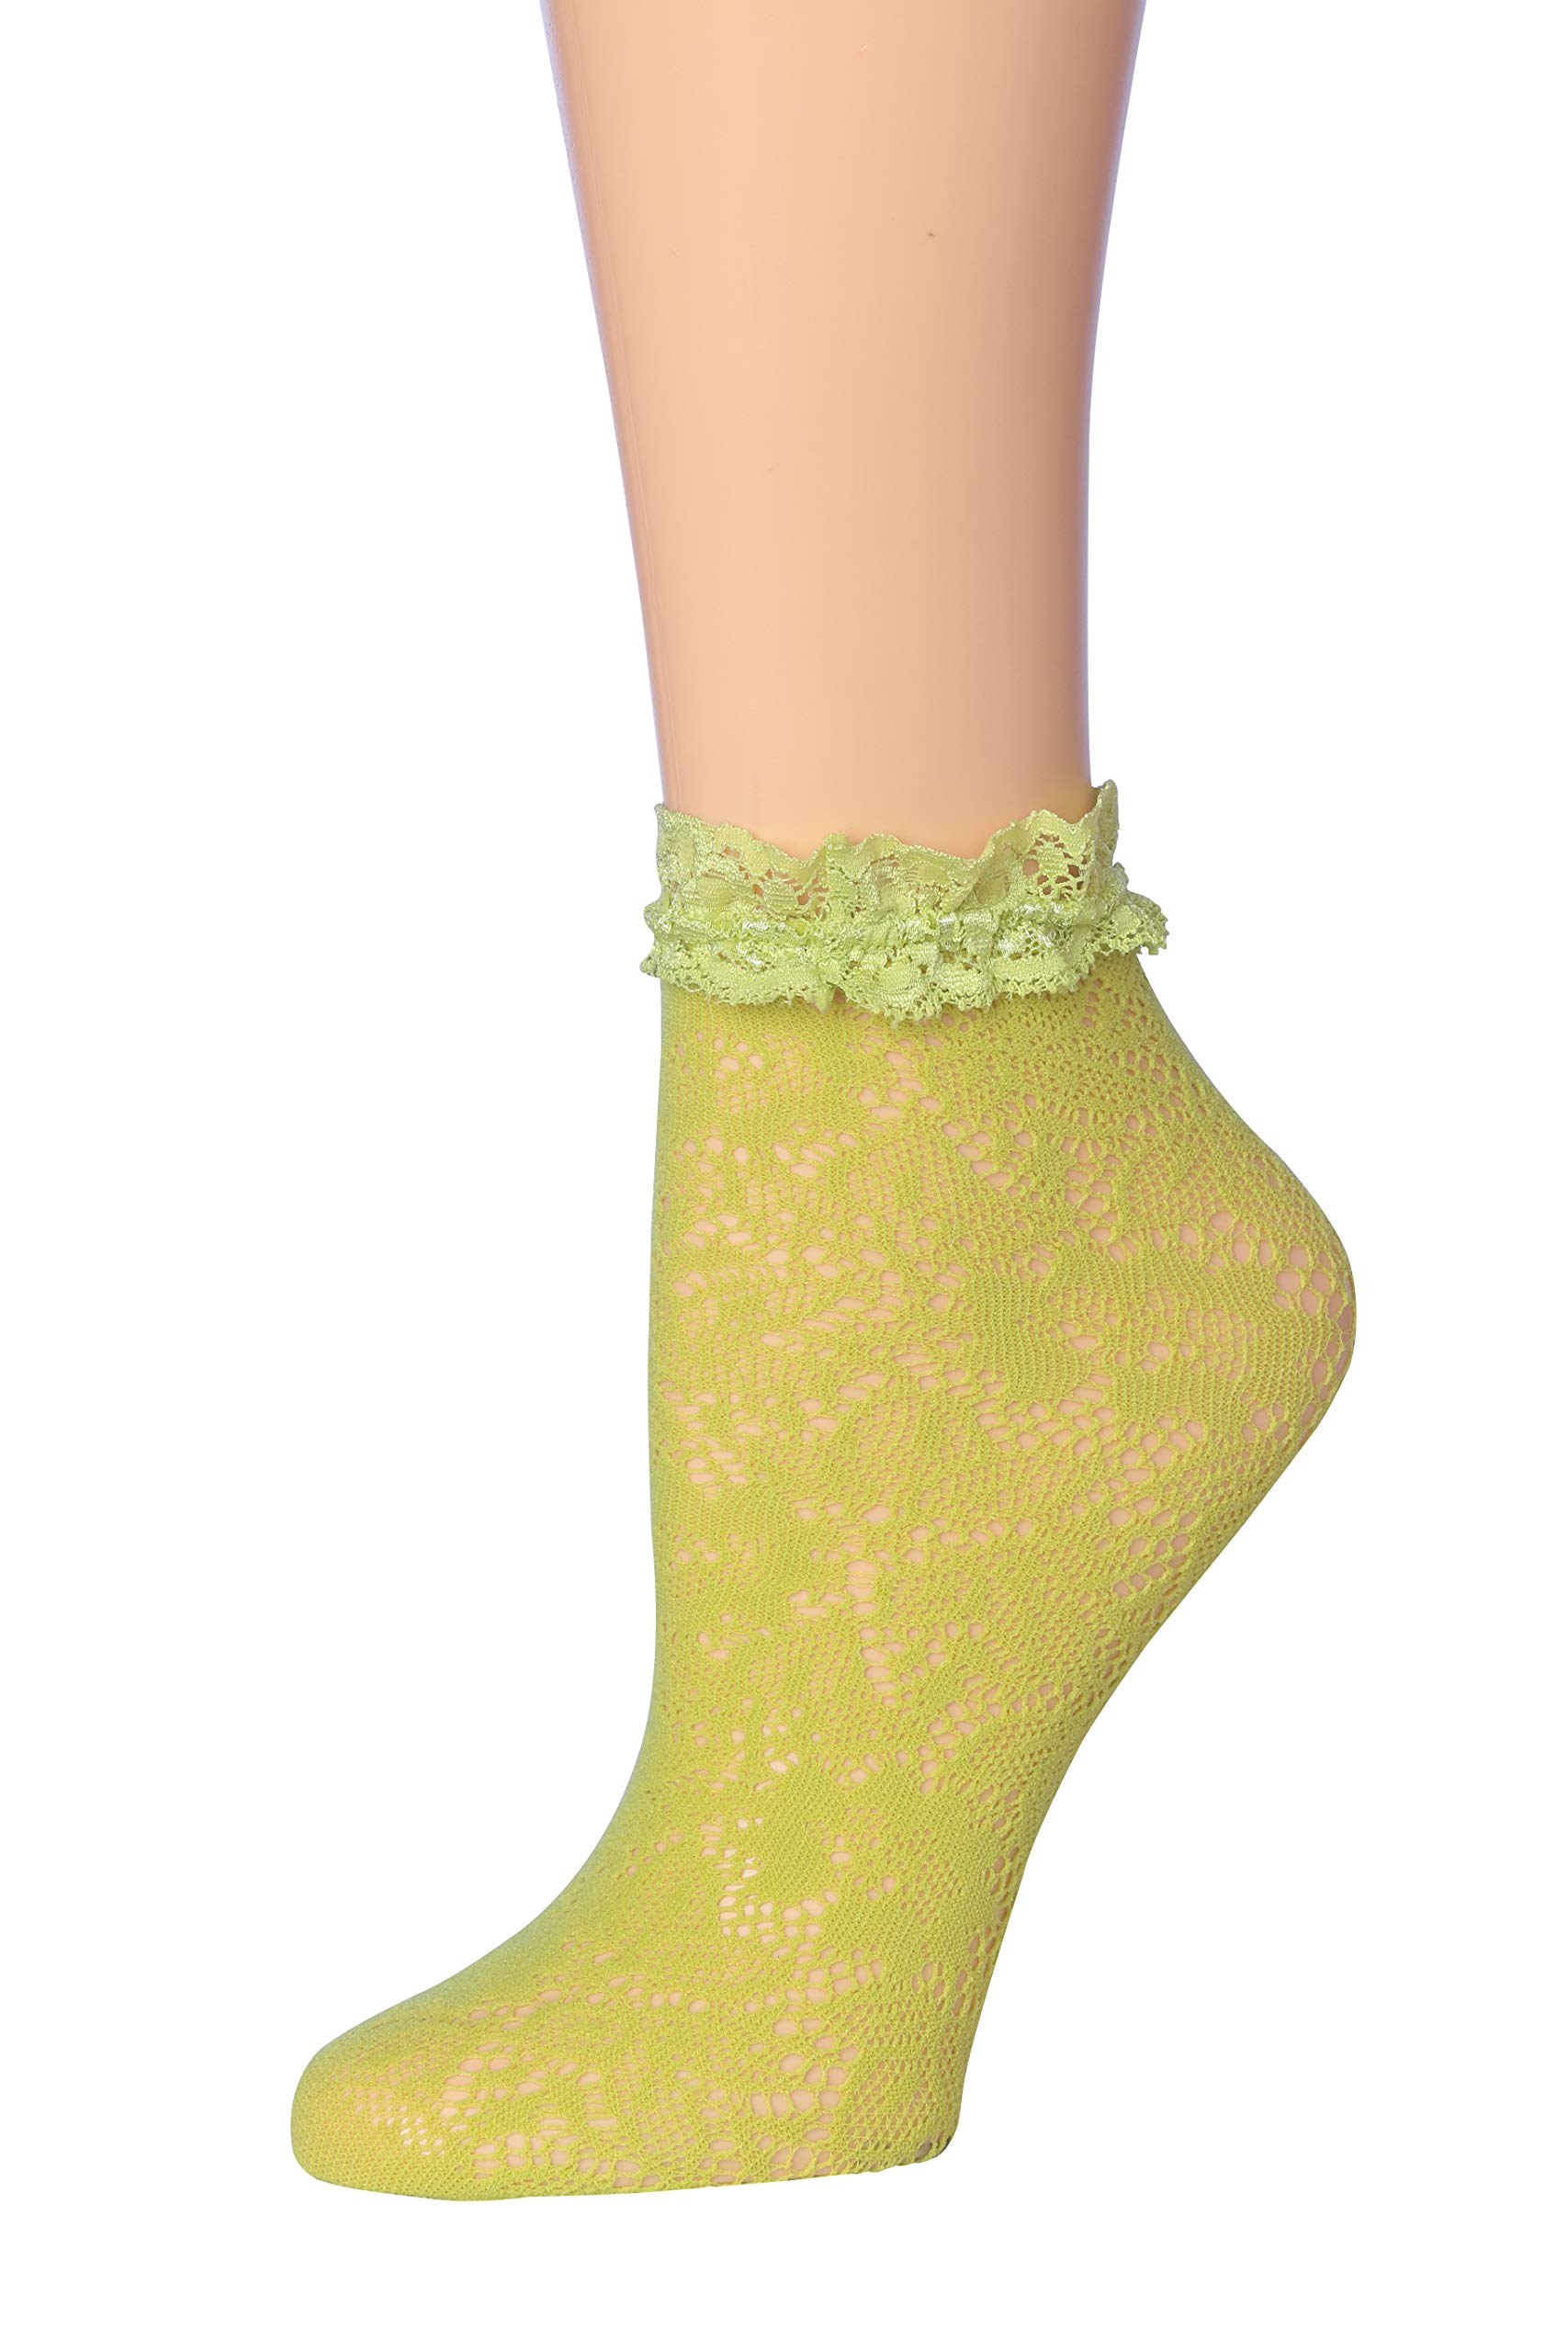 Isadora Paccini Women's Lace Anklet Socks LA02-Green